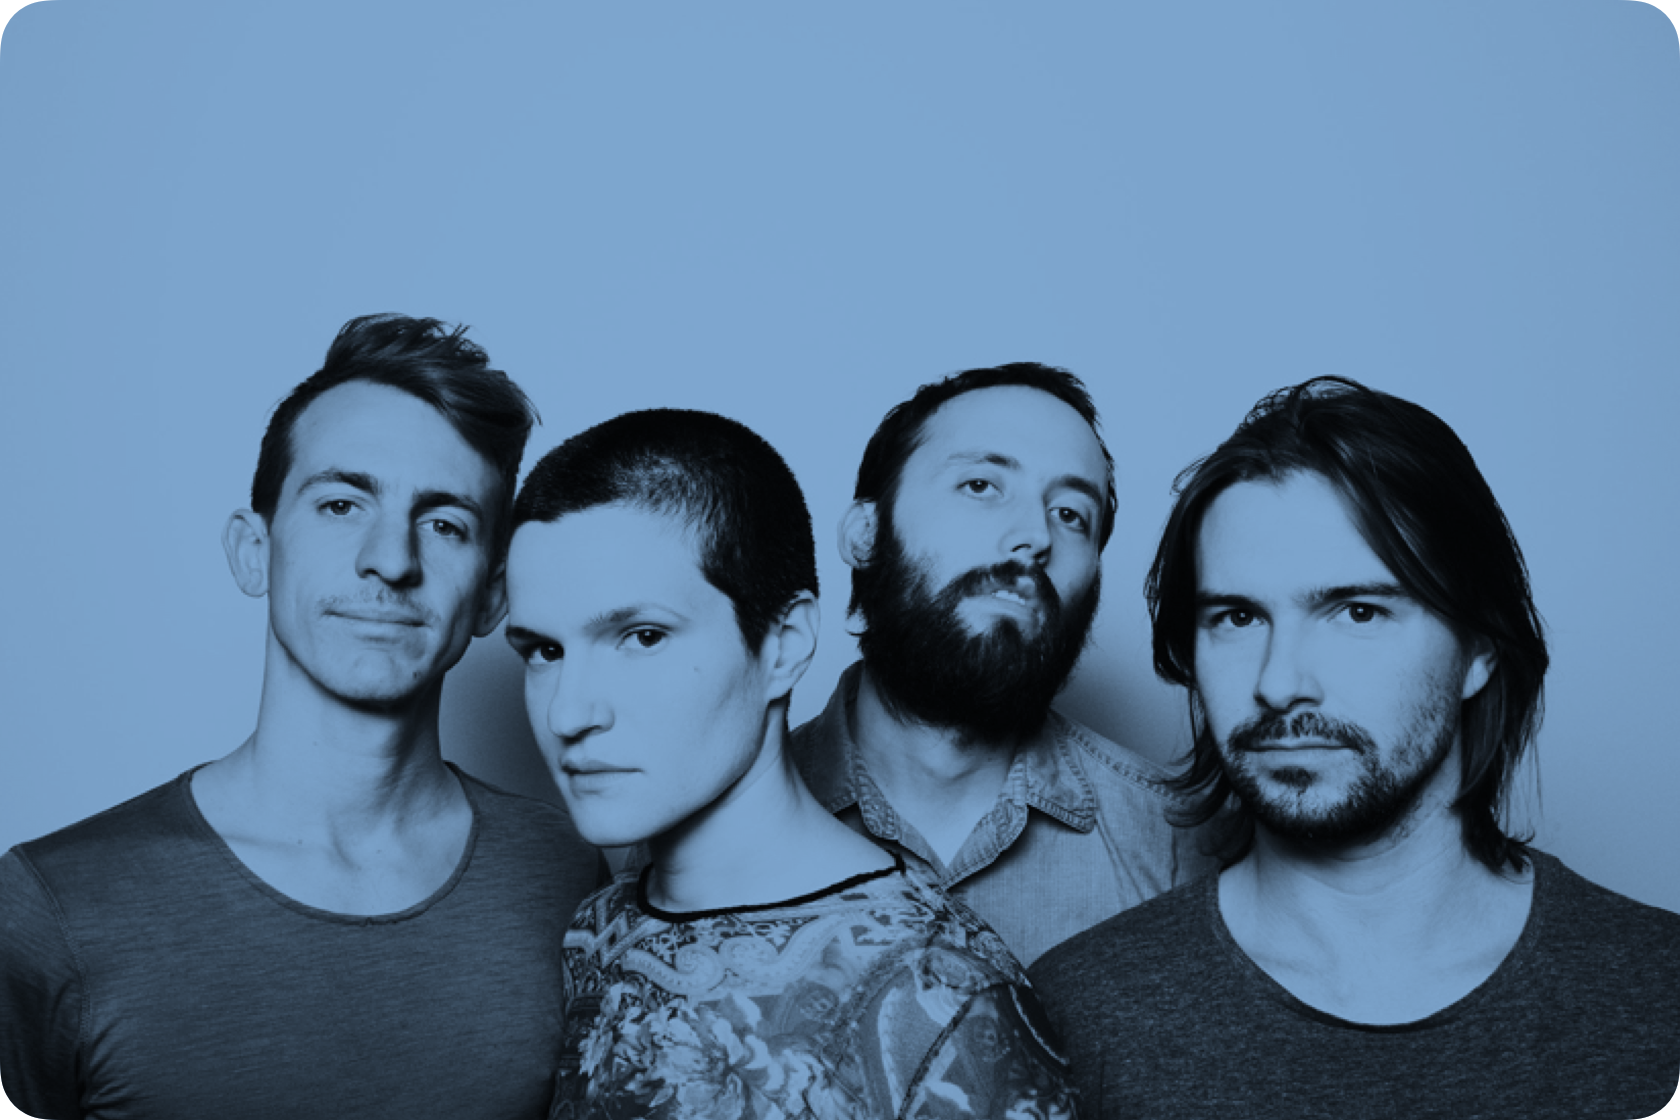 Members of Big Thief lined up